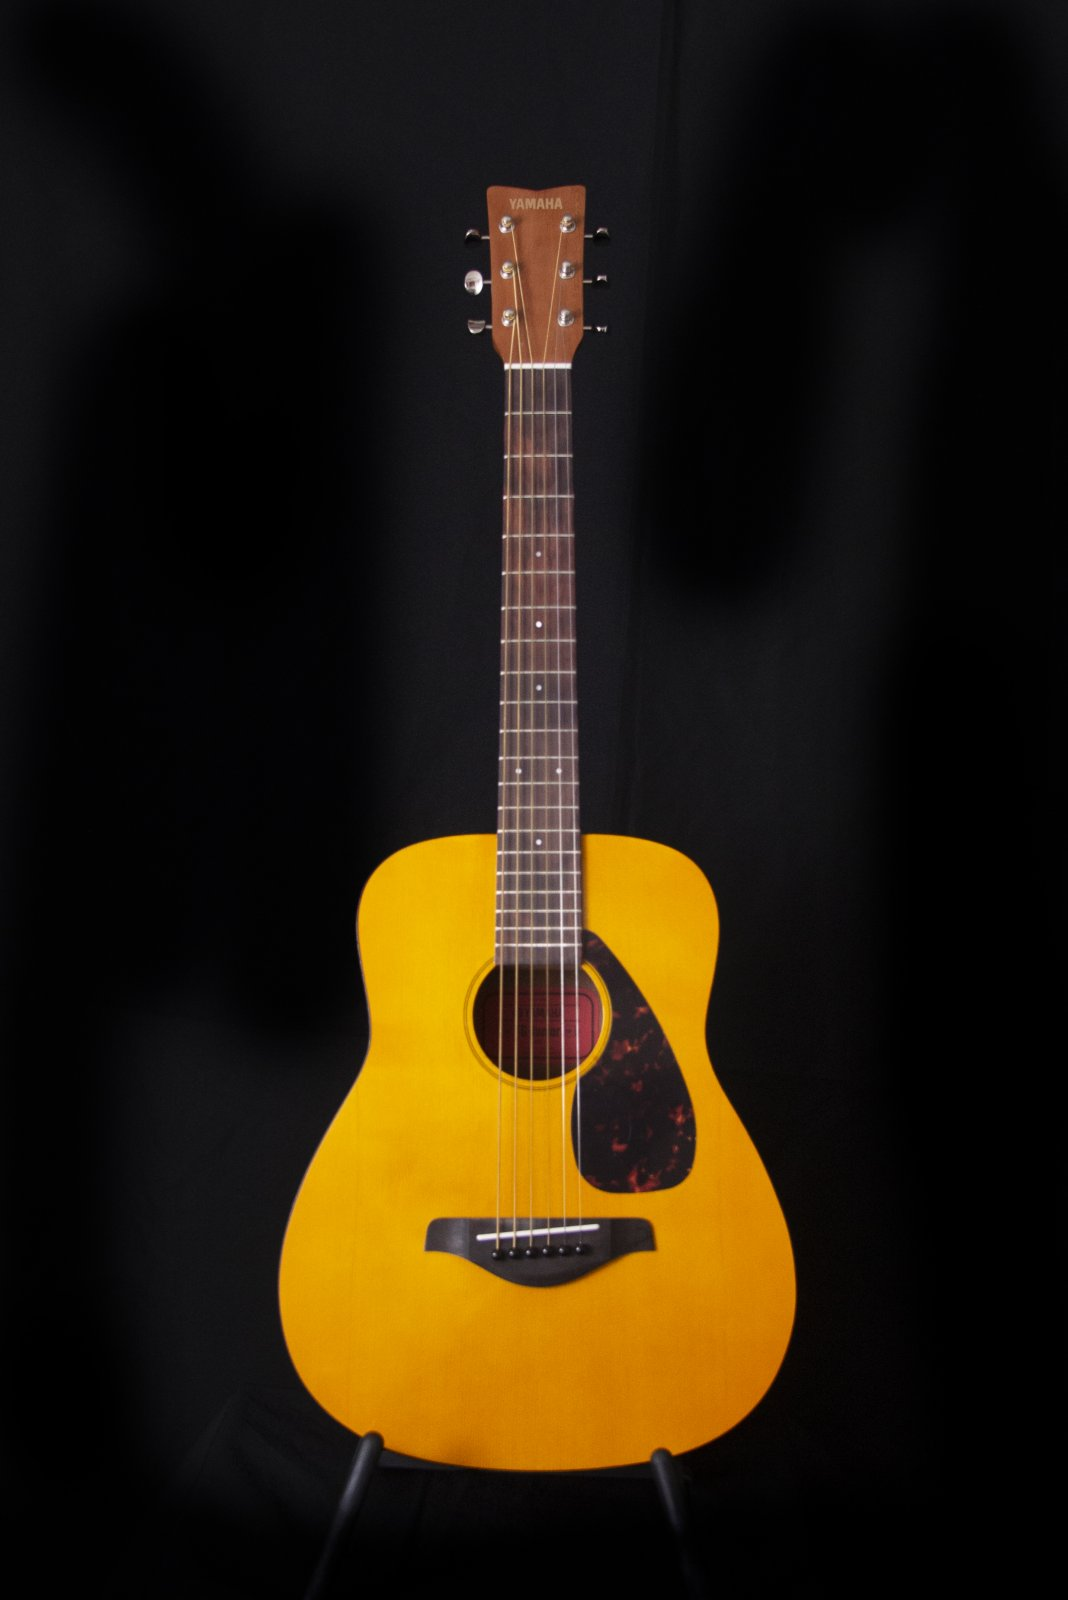 Yamaha Junior Folk Guitar